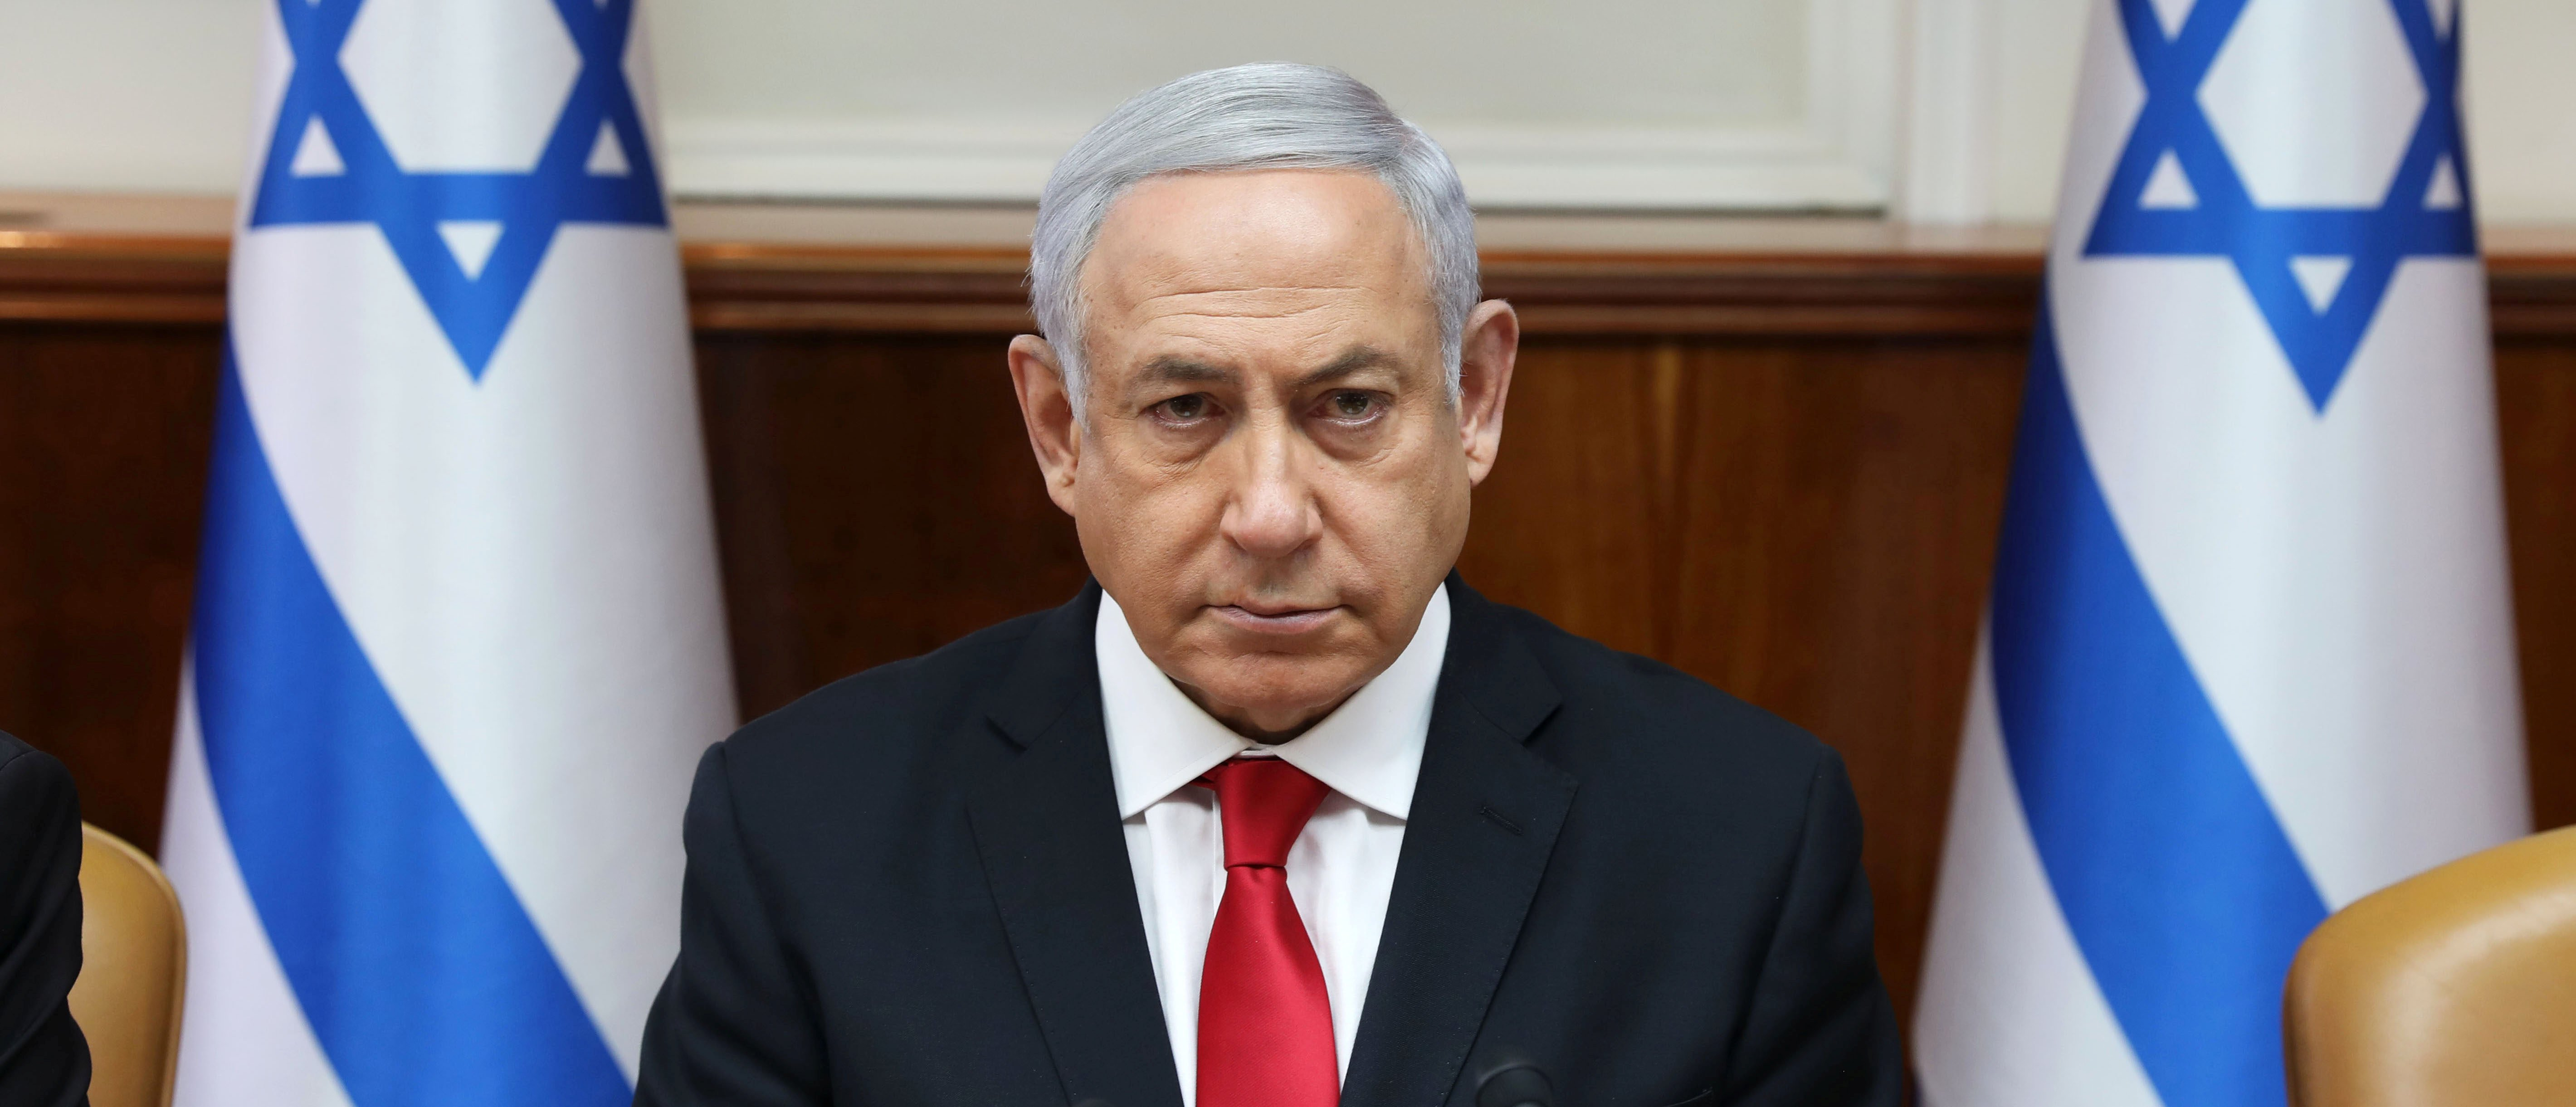 Israeli Prime Minister Benjamin Netanyahu attends the weekly cabinet meeting at his office in Jerusalem May 5, 2019. Abir Sultan/Pool via REUTERS - RC1F6B978030